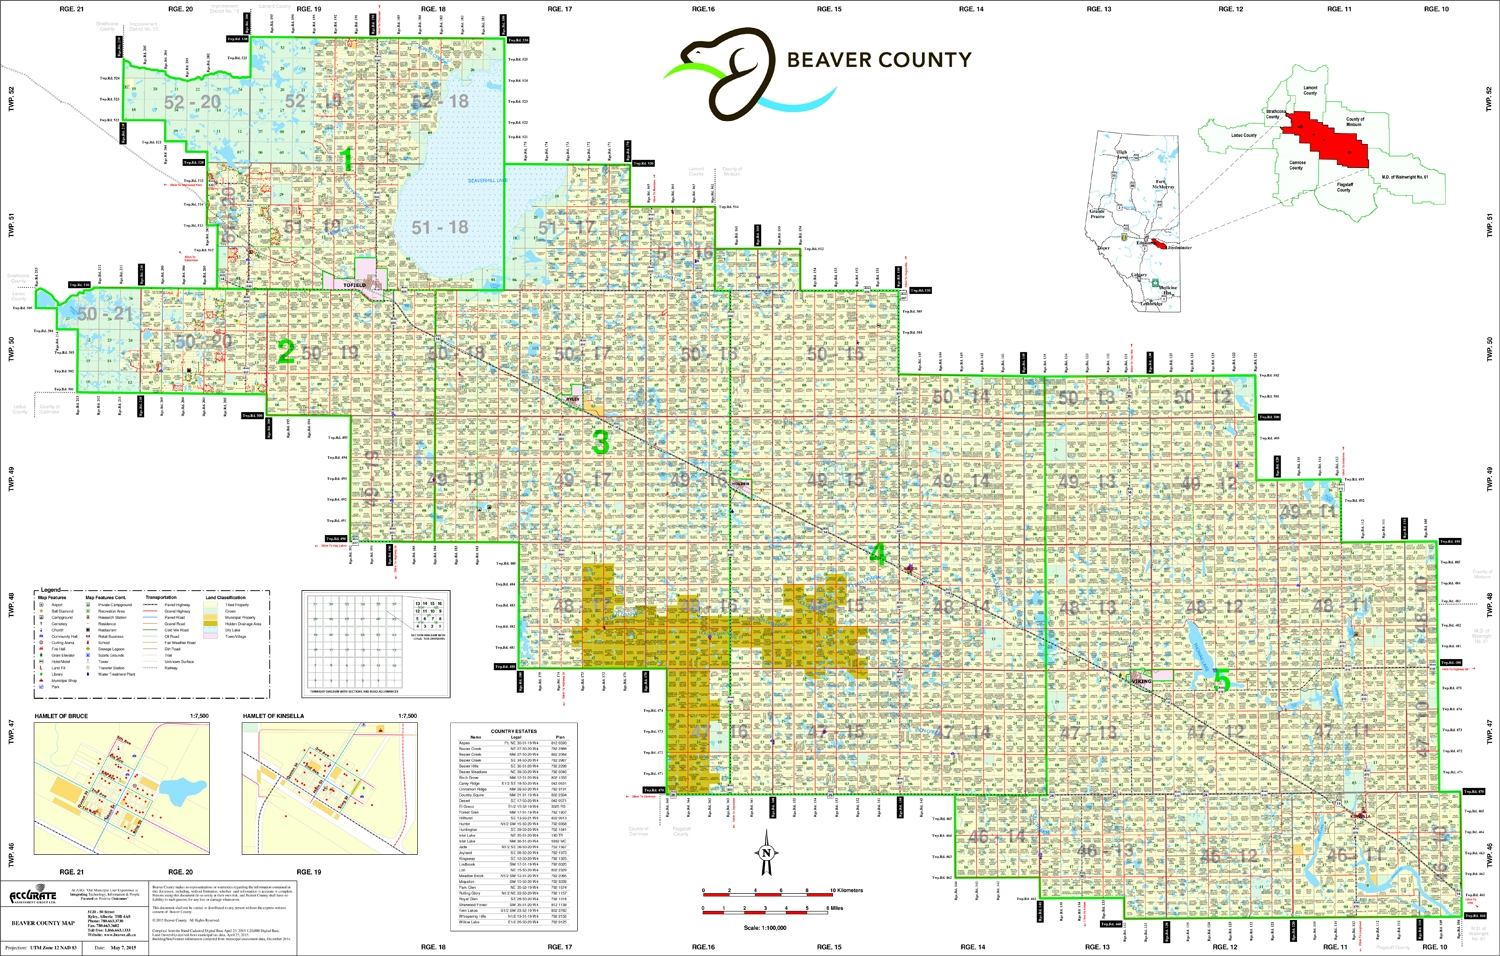 Land Ownership Maps Beaver County Landownership map C9. Includes places such as